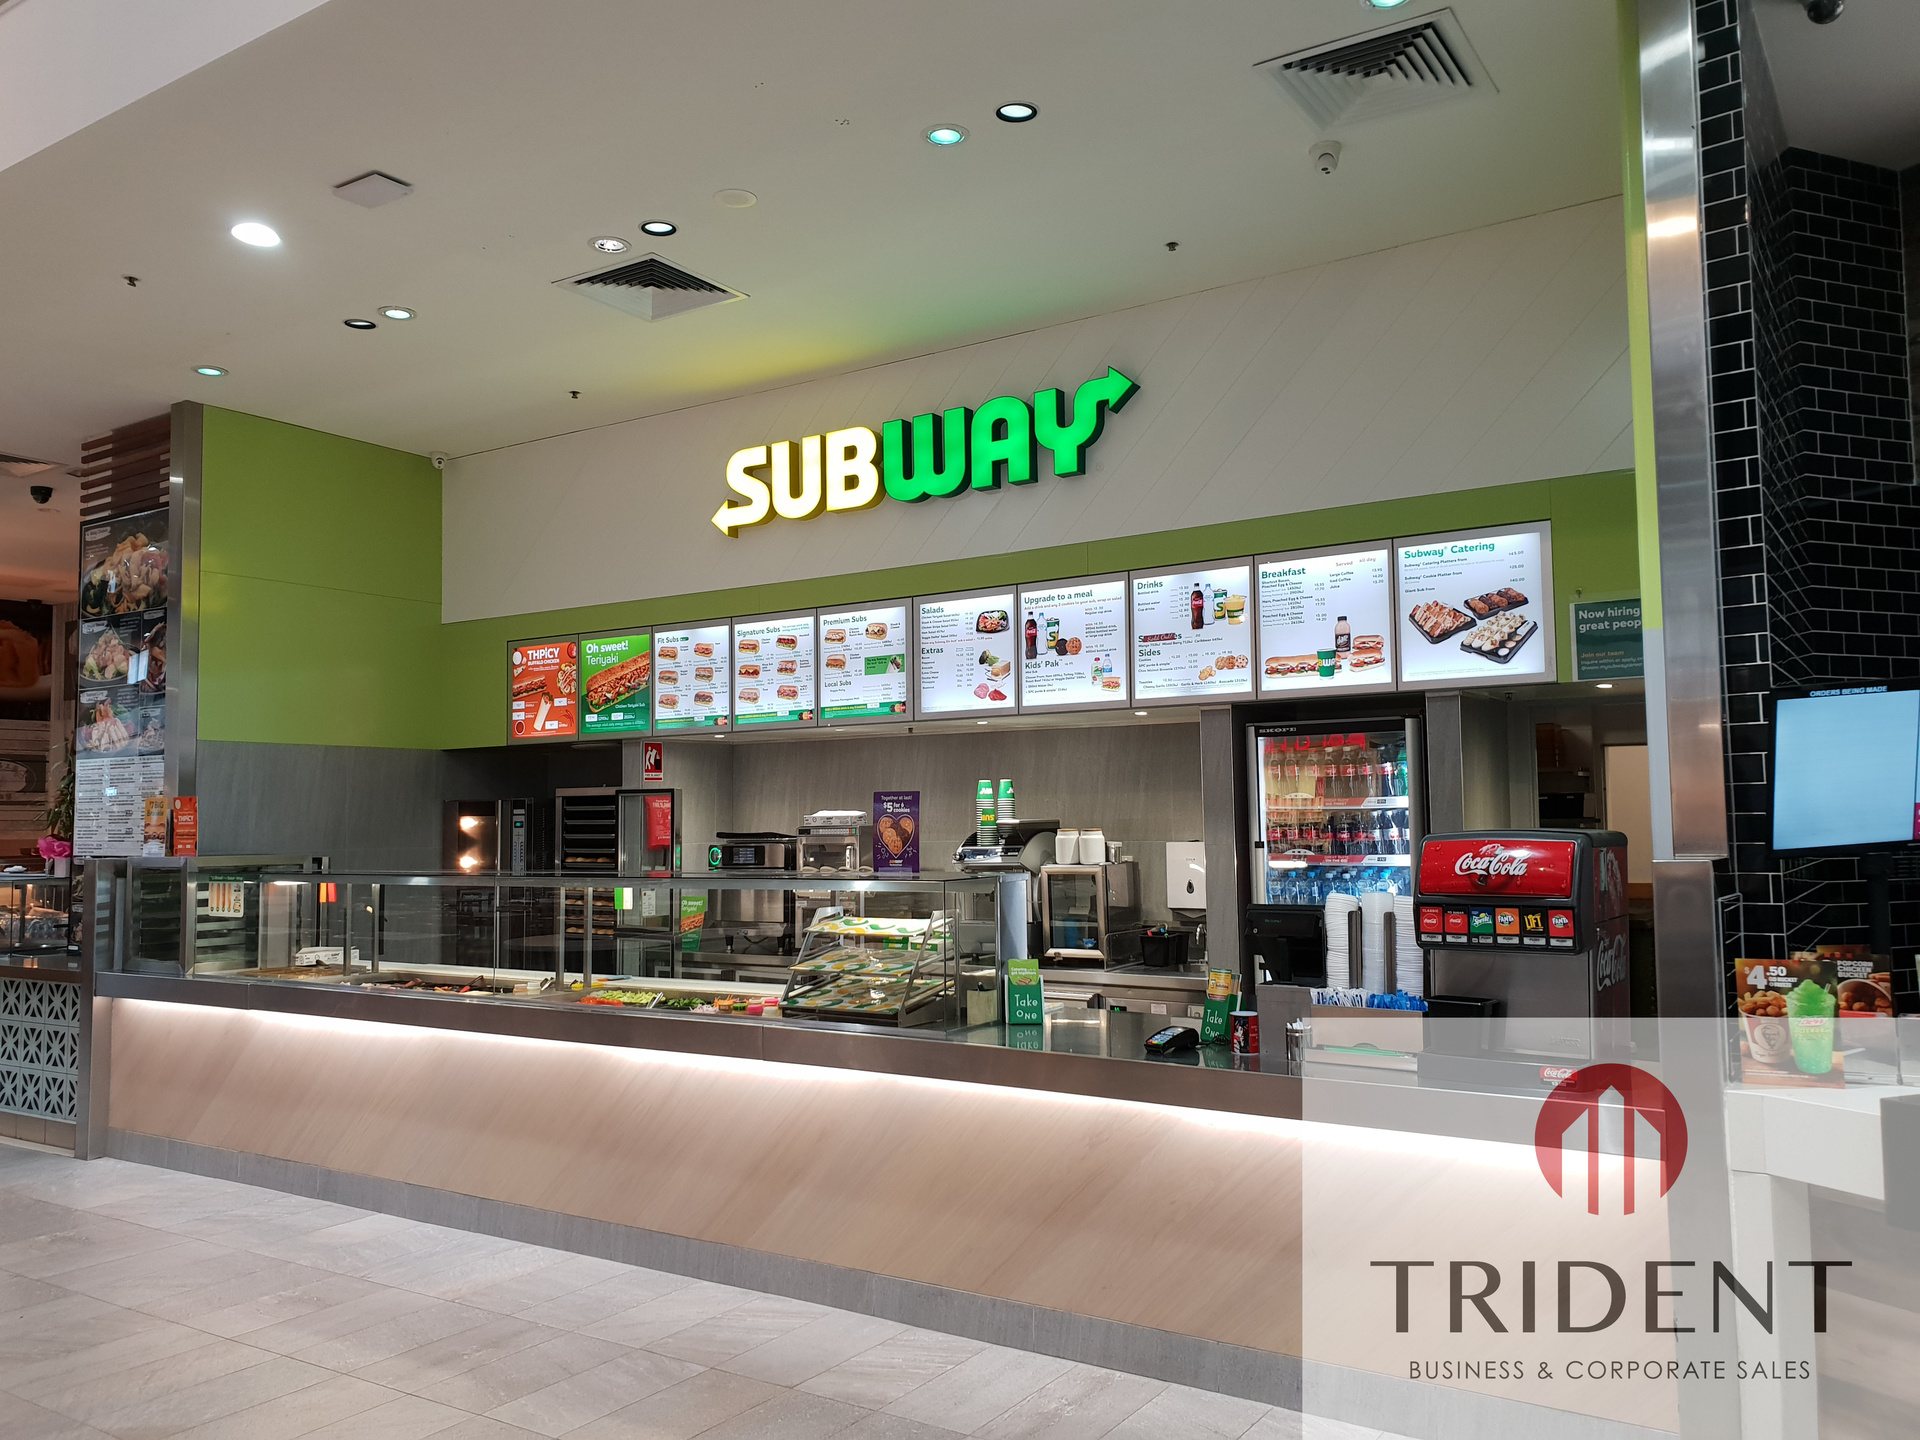 Subway Food Court Franchise for Sale Bendigo VIC